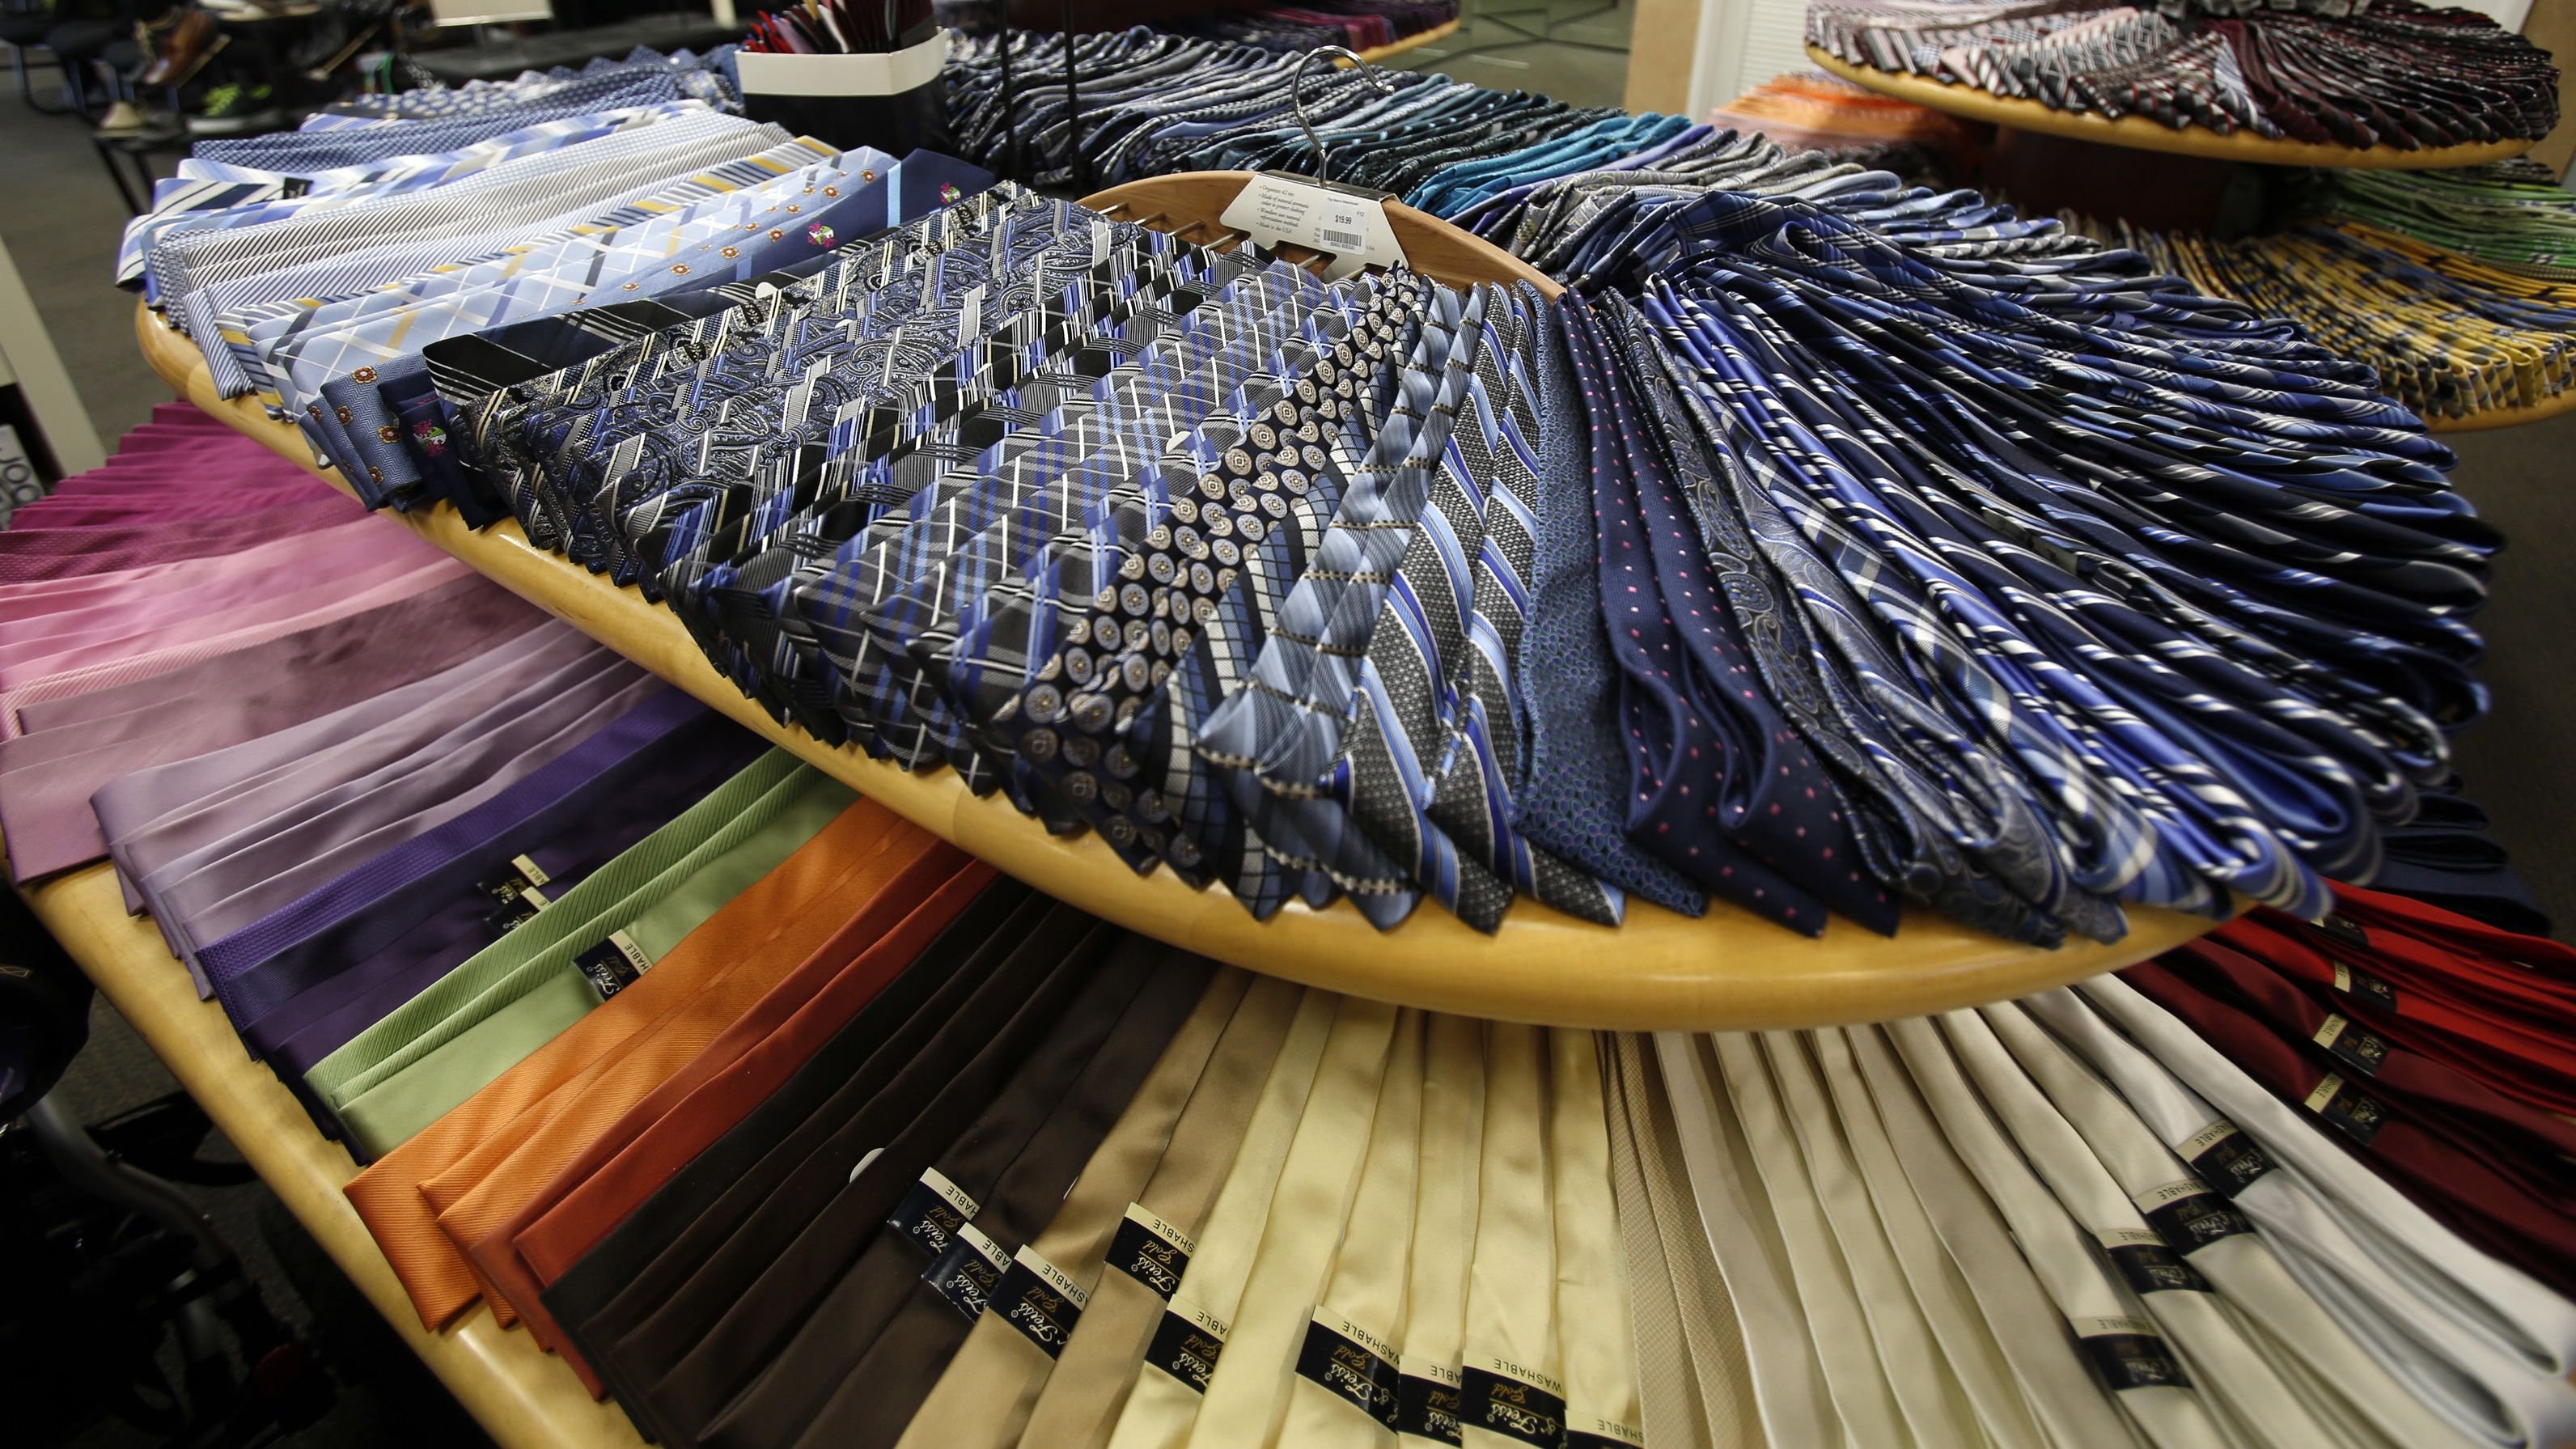 Ties are pictured at a Men's Wearhouse store in Pasadena, California June 25, 2013. Men's Wearhouse Inc said it fired founder and Executive Chairman George Zimmer after he pushed to take the company private and effectively demanded to be reinstated as the sole decision maker at the clothing chain. REUTERS/Mario Anzuoni (UNITED STATES - Tags: BUSINESS TEXTILE EMPLOYMENT)